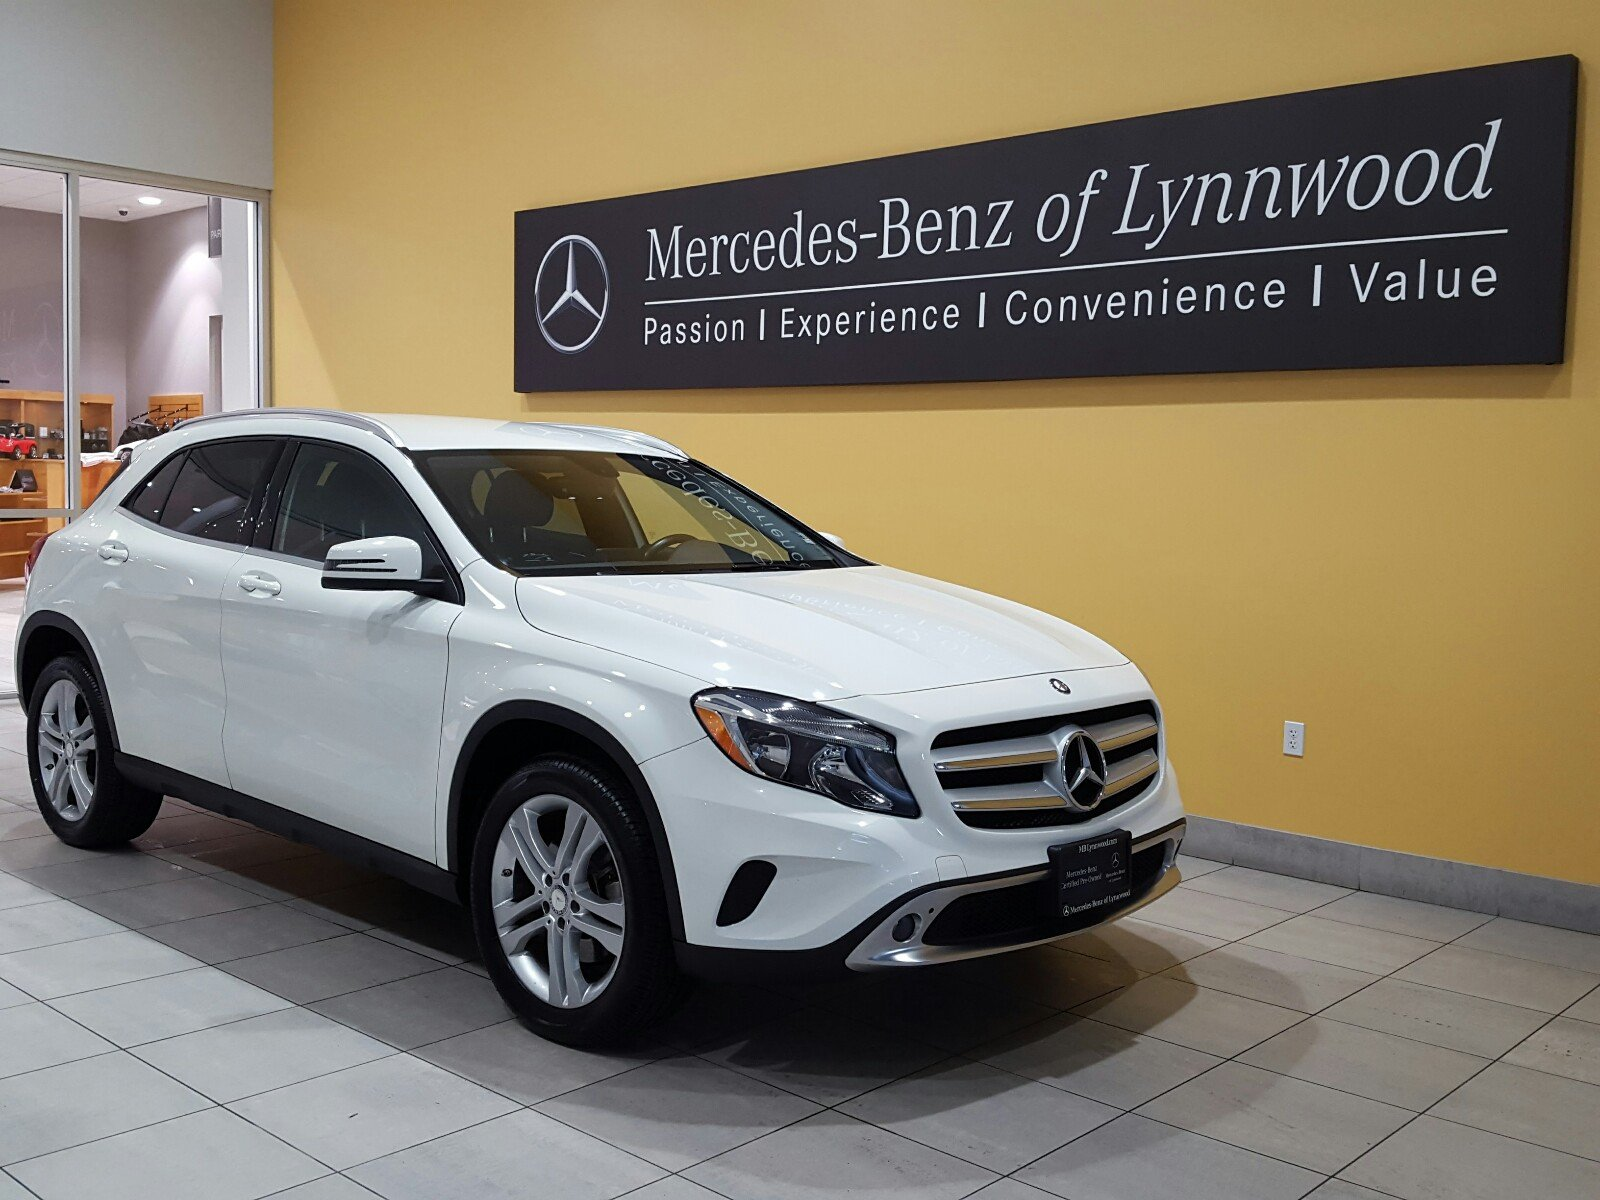 Certified pre owned 2015 mercedes benz gla gla 250 4matic for Mercedes benz cpo special offers